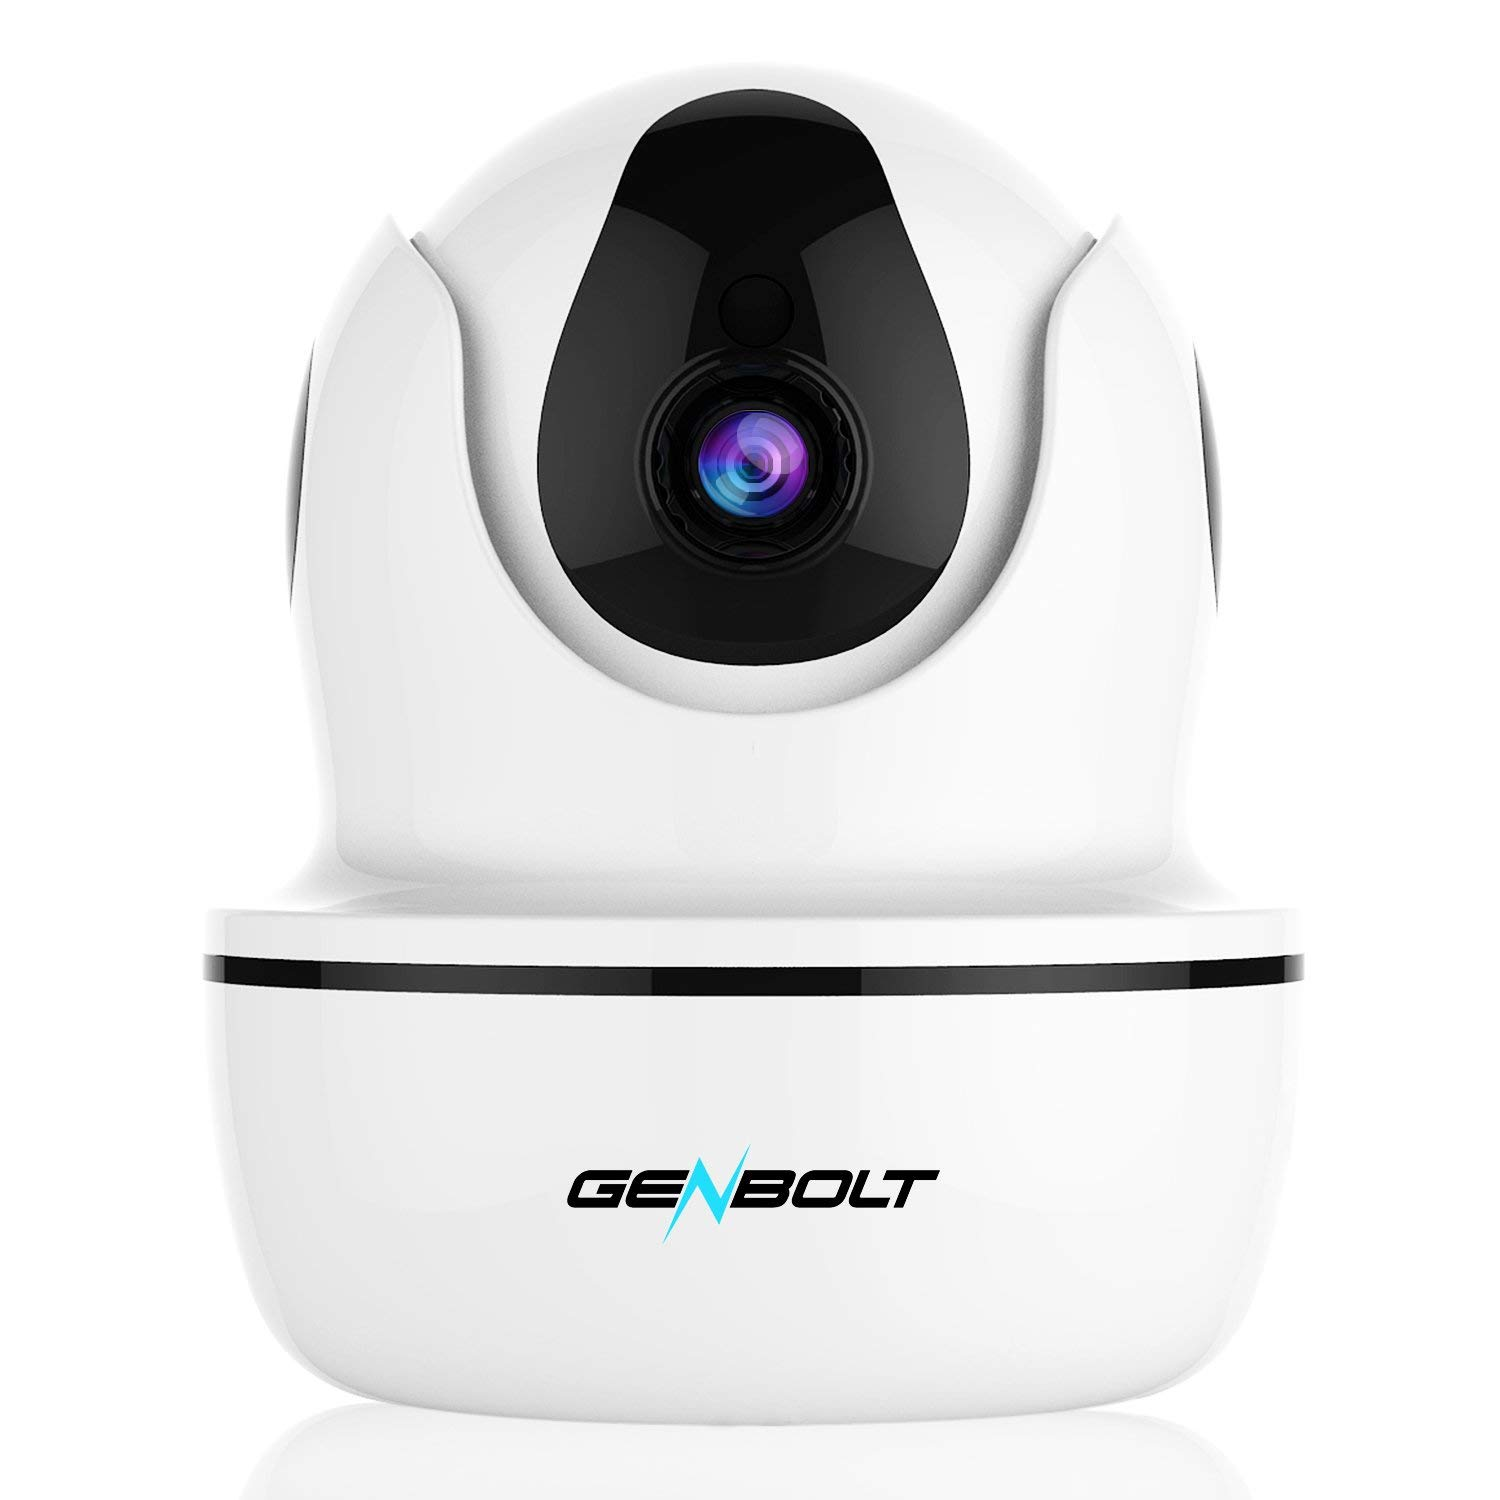 GENBOLT 1080P Wireless IP Security Camera WiFi HD CCTV Pan Tilt Spy Camera Indoor for Home Surveillance, Two Way Audio Motion Detection Remote Webcam, Dog Cam, Baby Monitor